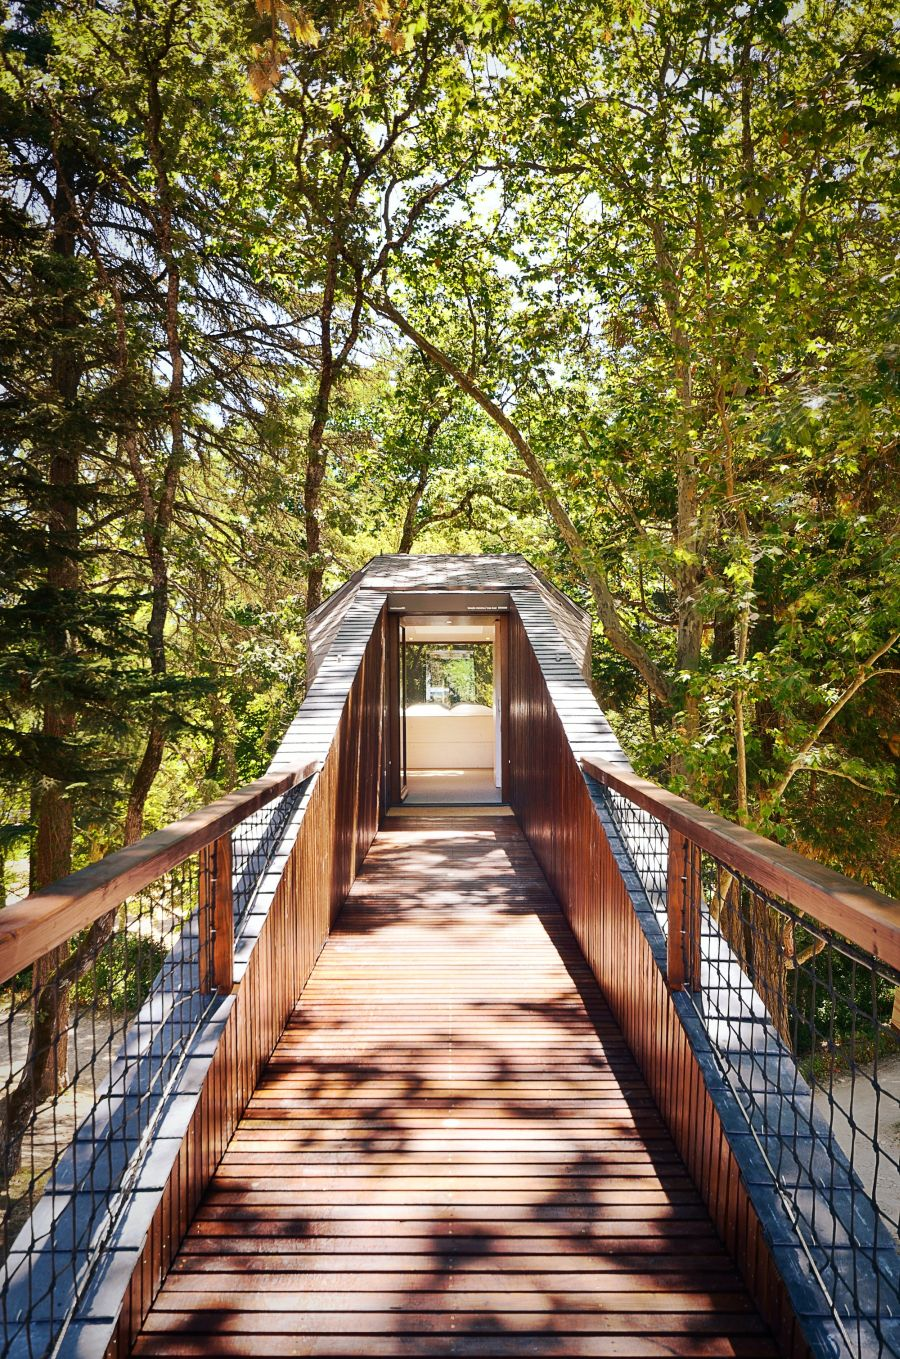 Light natural material used to craft the eco-friendly retreats